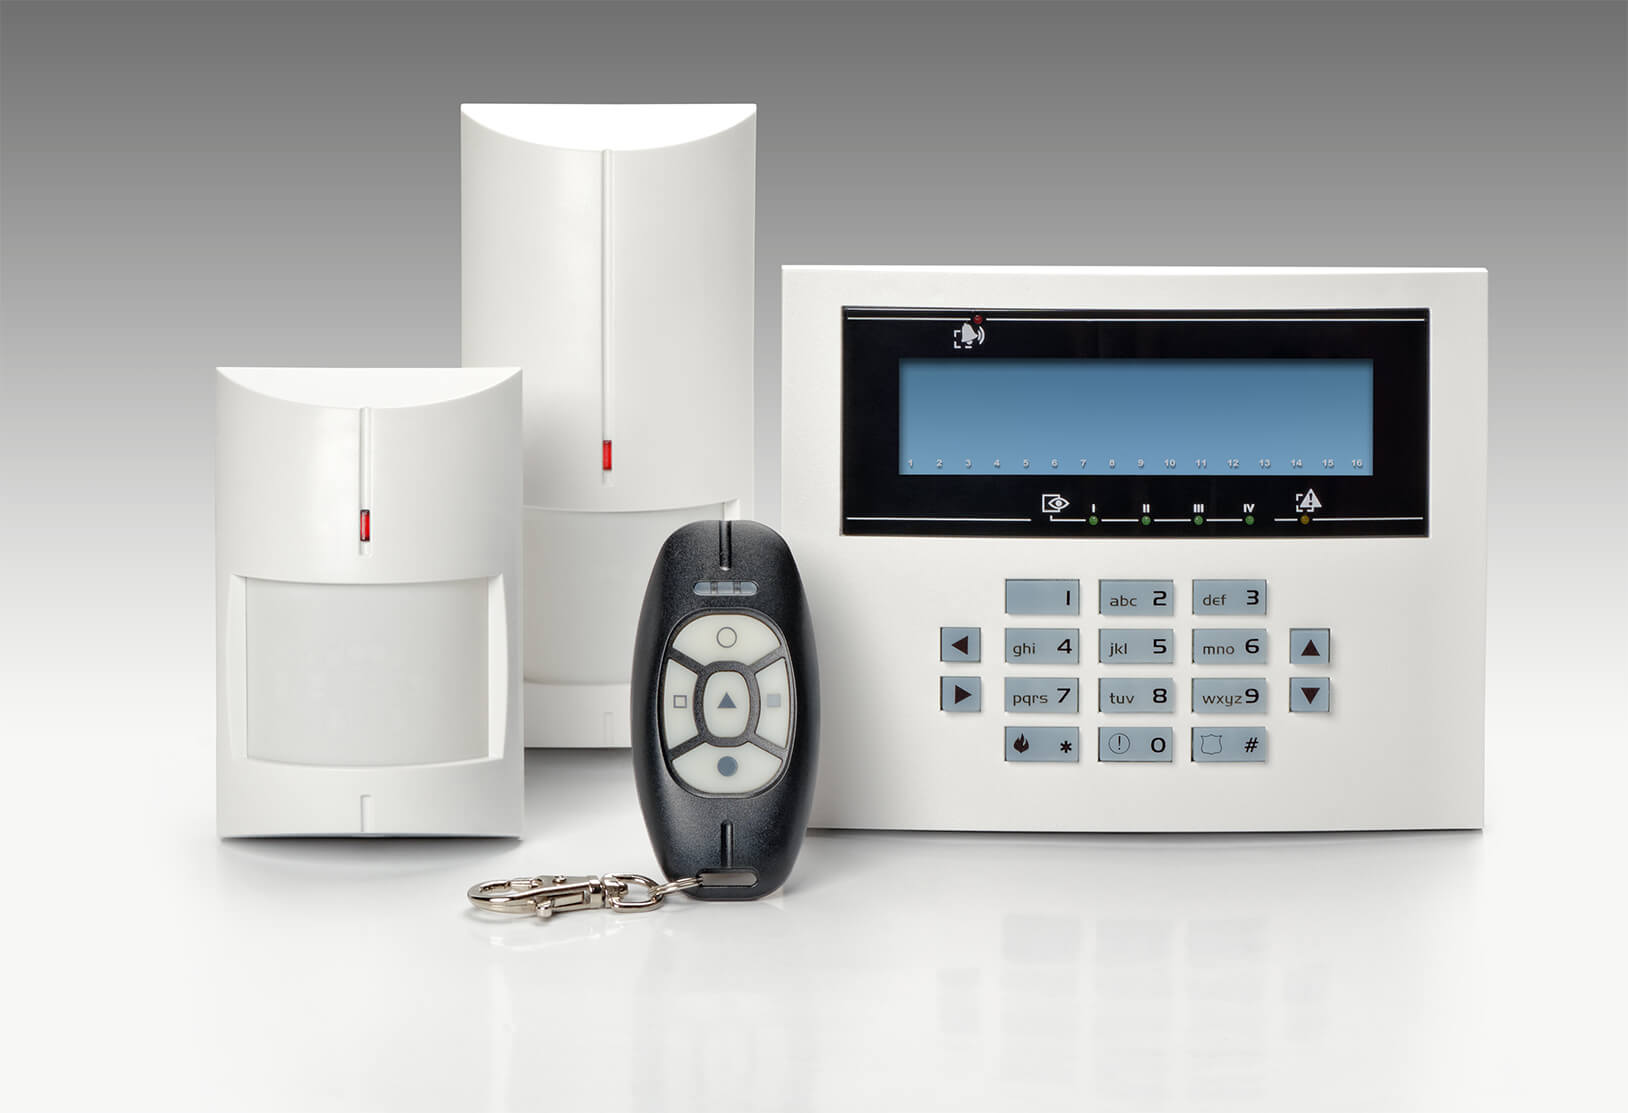 Business & Residential NACOSS Approved Burglar Alarms In Belgravia SW1 - Local Belgravia SW1 security company.Call 02078872244 - Dedicated to Safety & Security. Companies, shops and homes ..